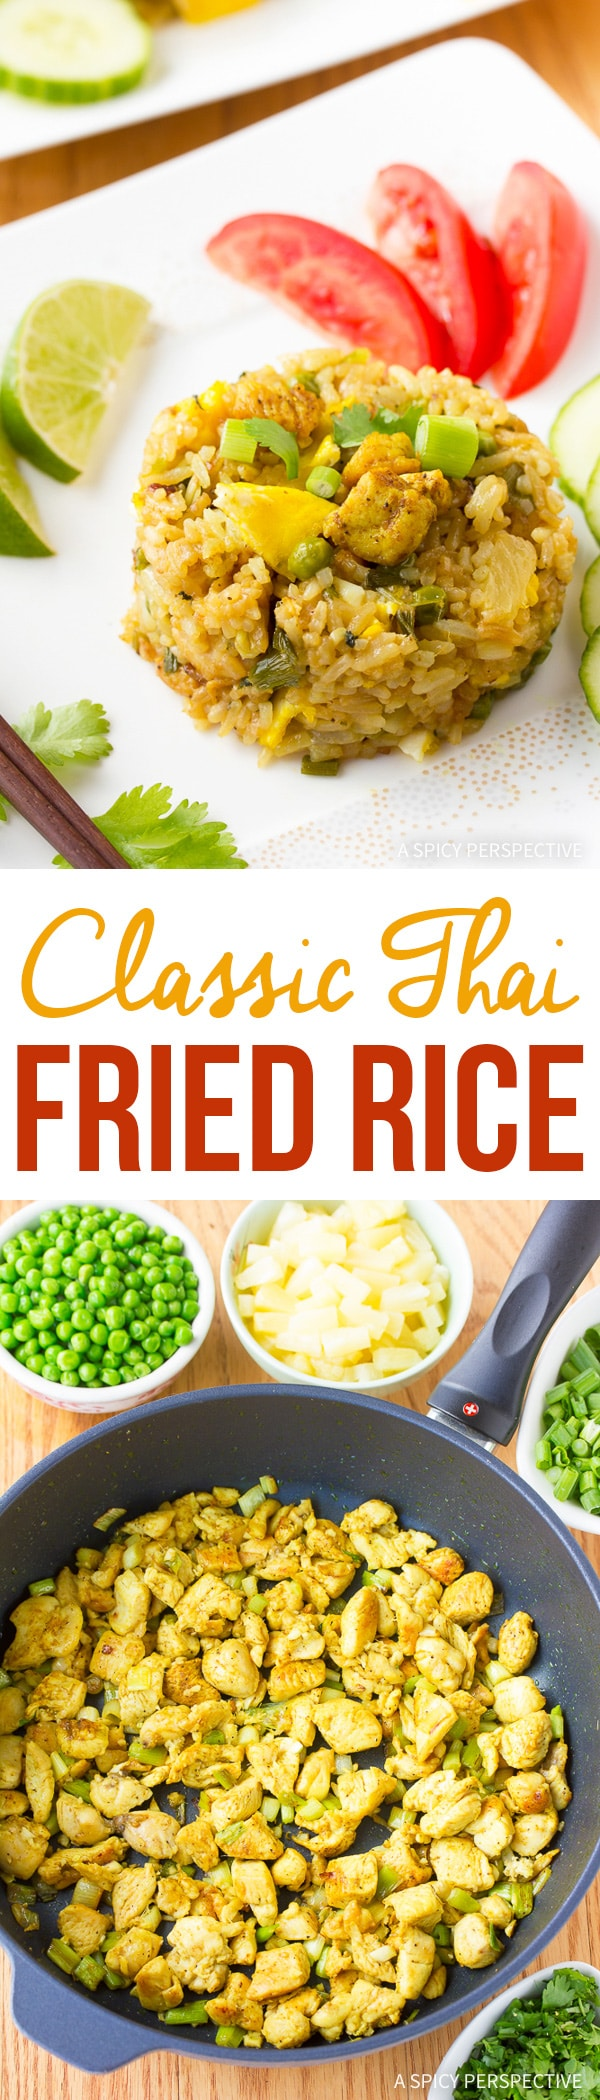 The Best Classic Thai Fried Rice Recipe